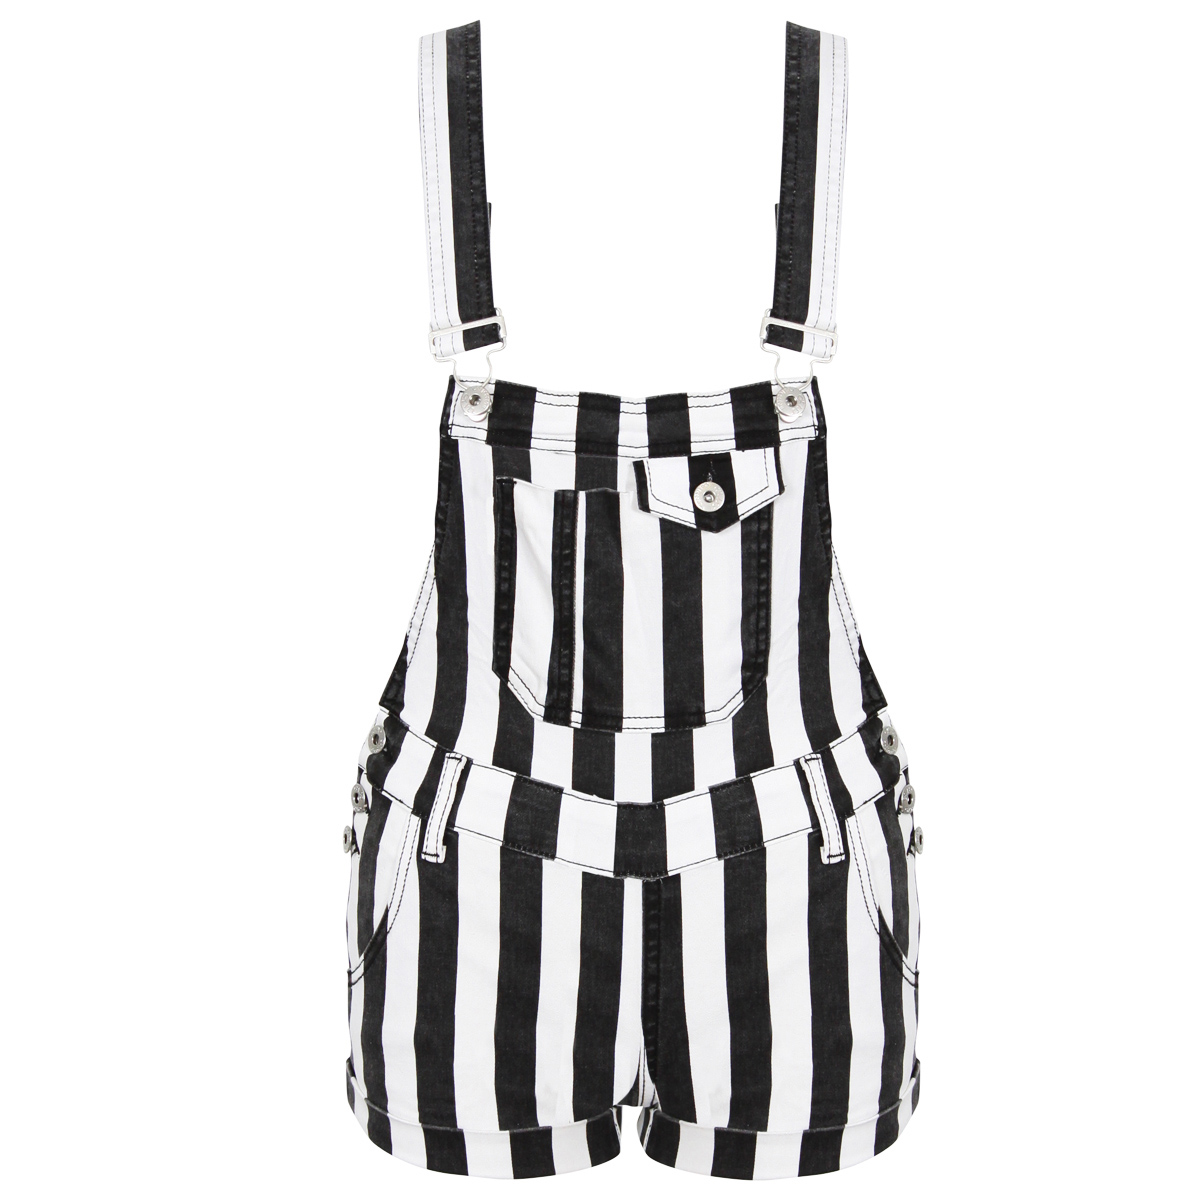 NEW WOMENS BLACK WHITE STRIPE DENIM DUNGAREE PLAYSUIT LADIES SHORTS 6 8 10 12 14 Enlarged Preview